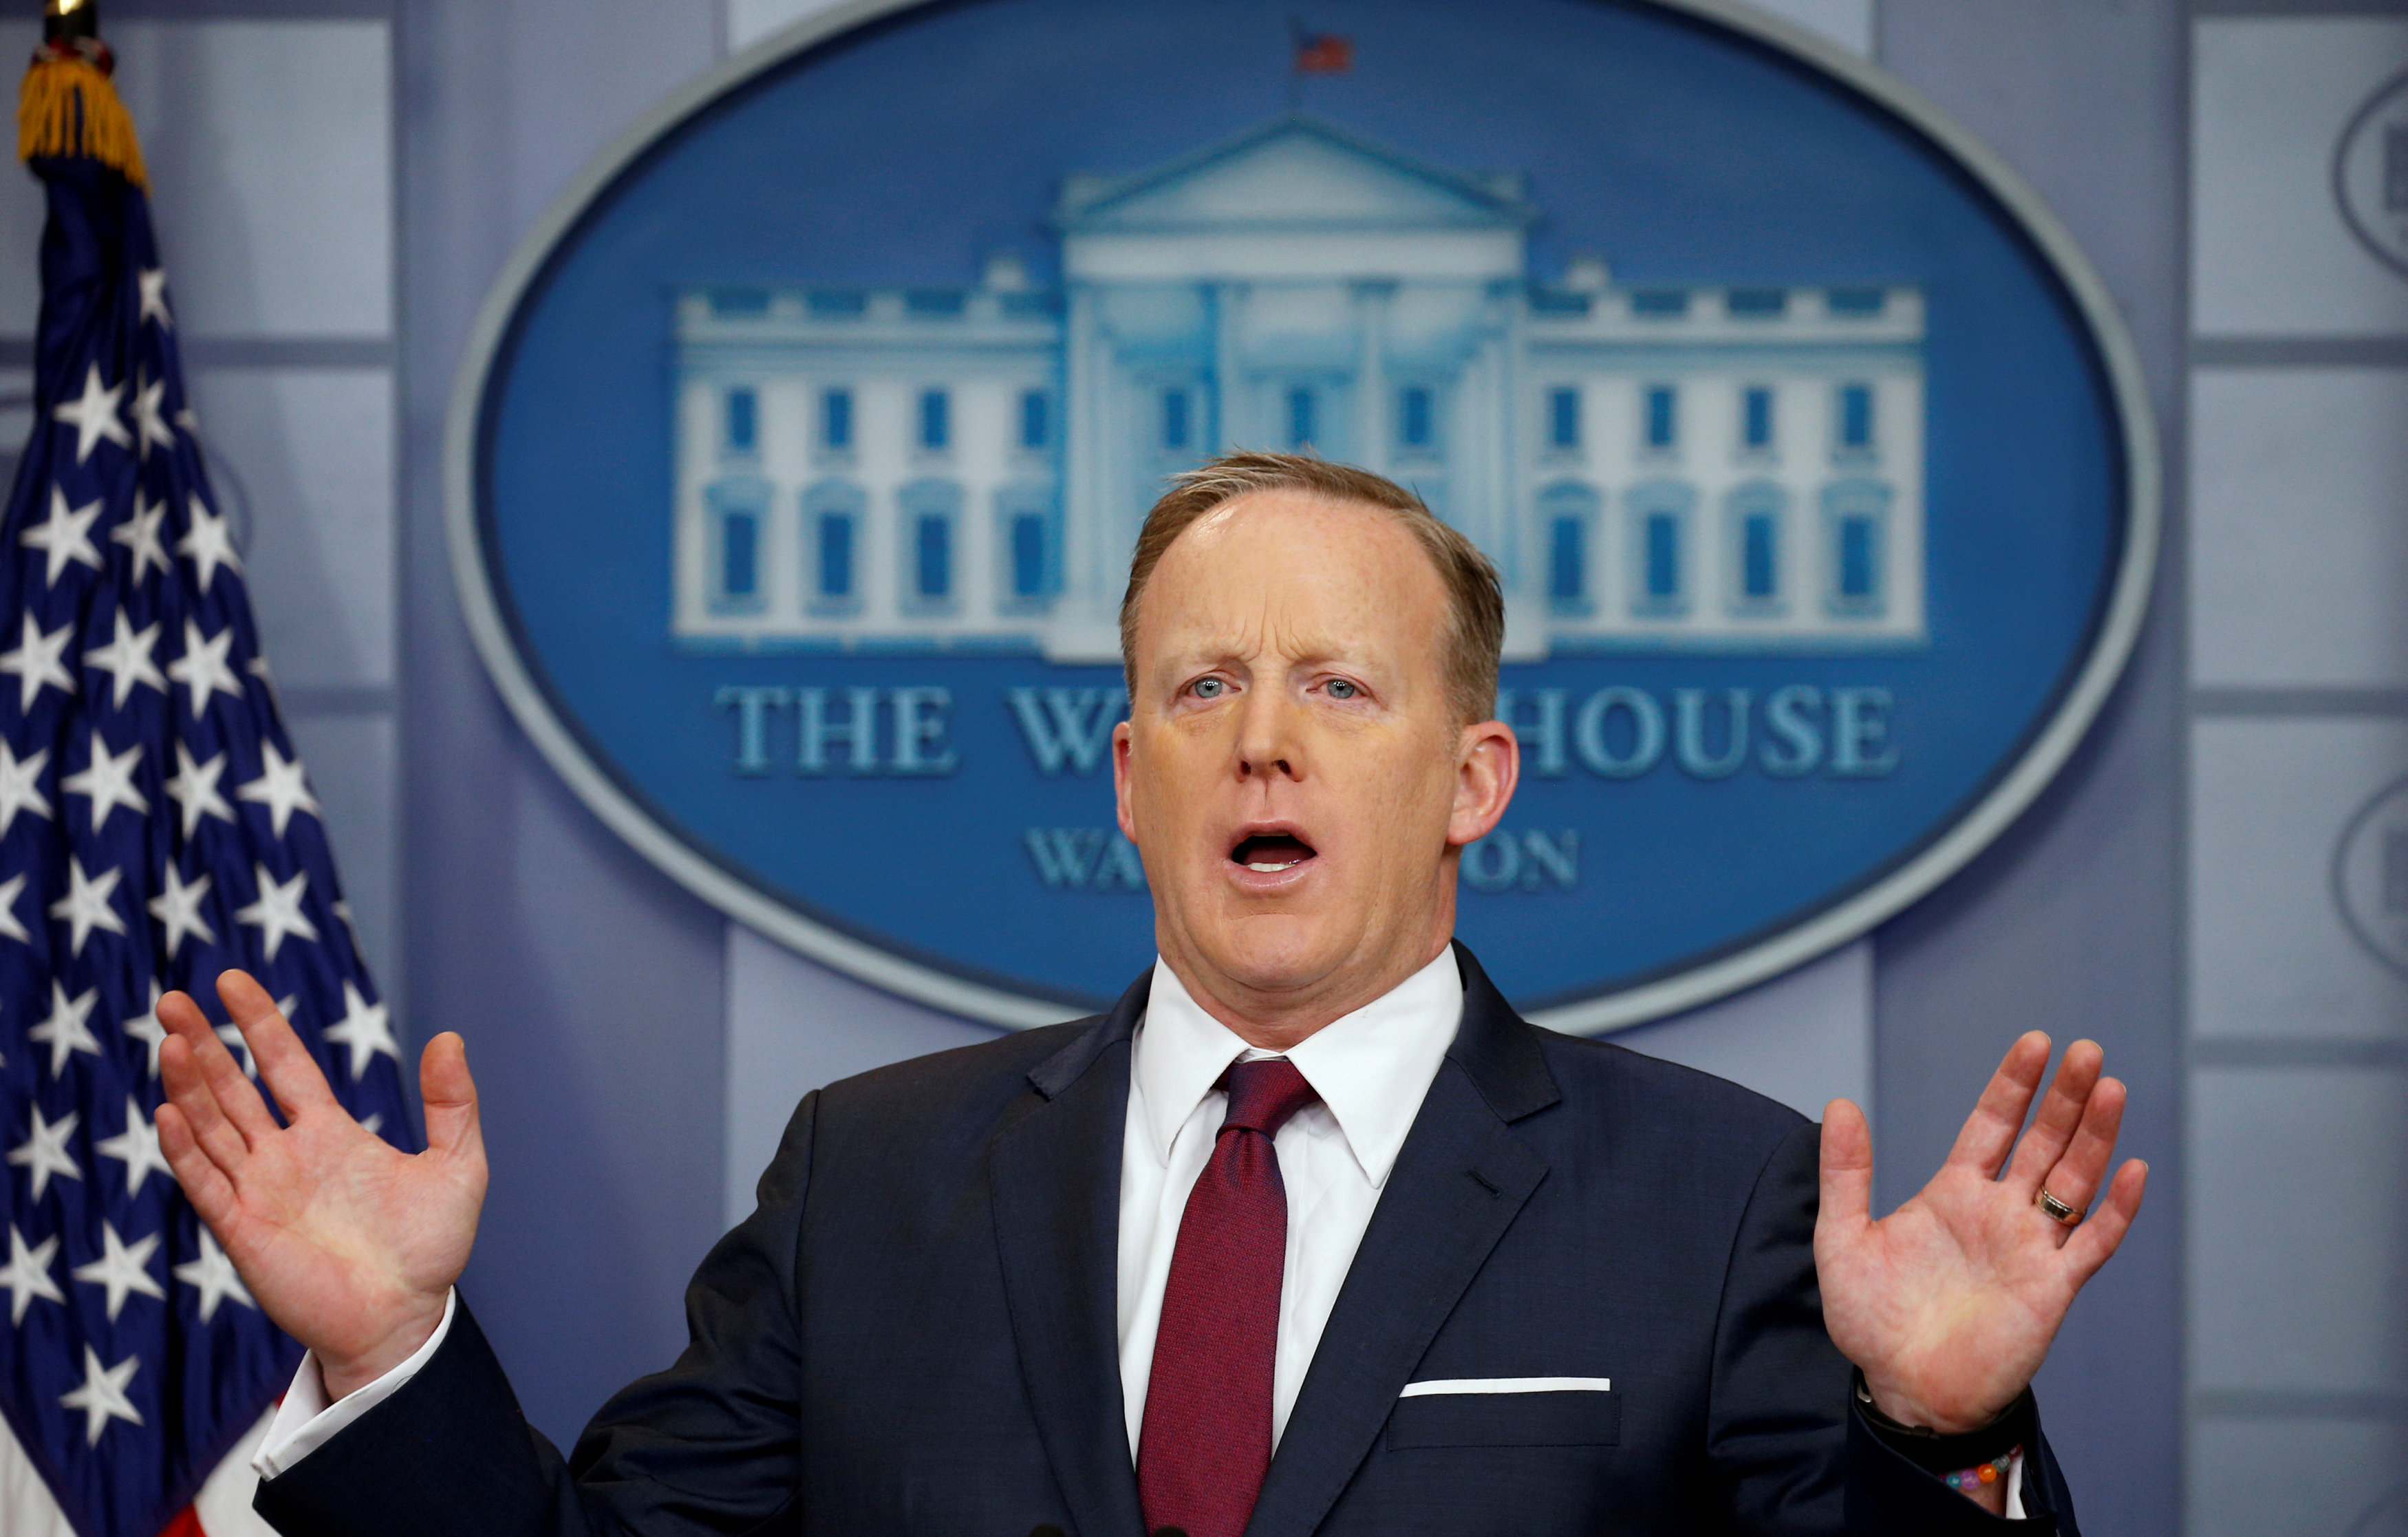 White House spokesman Sean Spicer during a press briefing at the White House in Washington on March 24, 2017. (REUTERS/Kevin Lamarque)